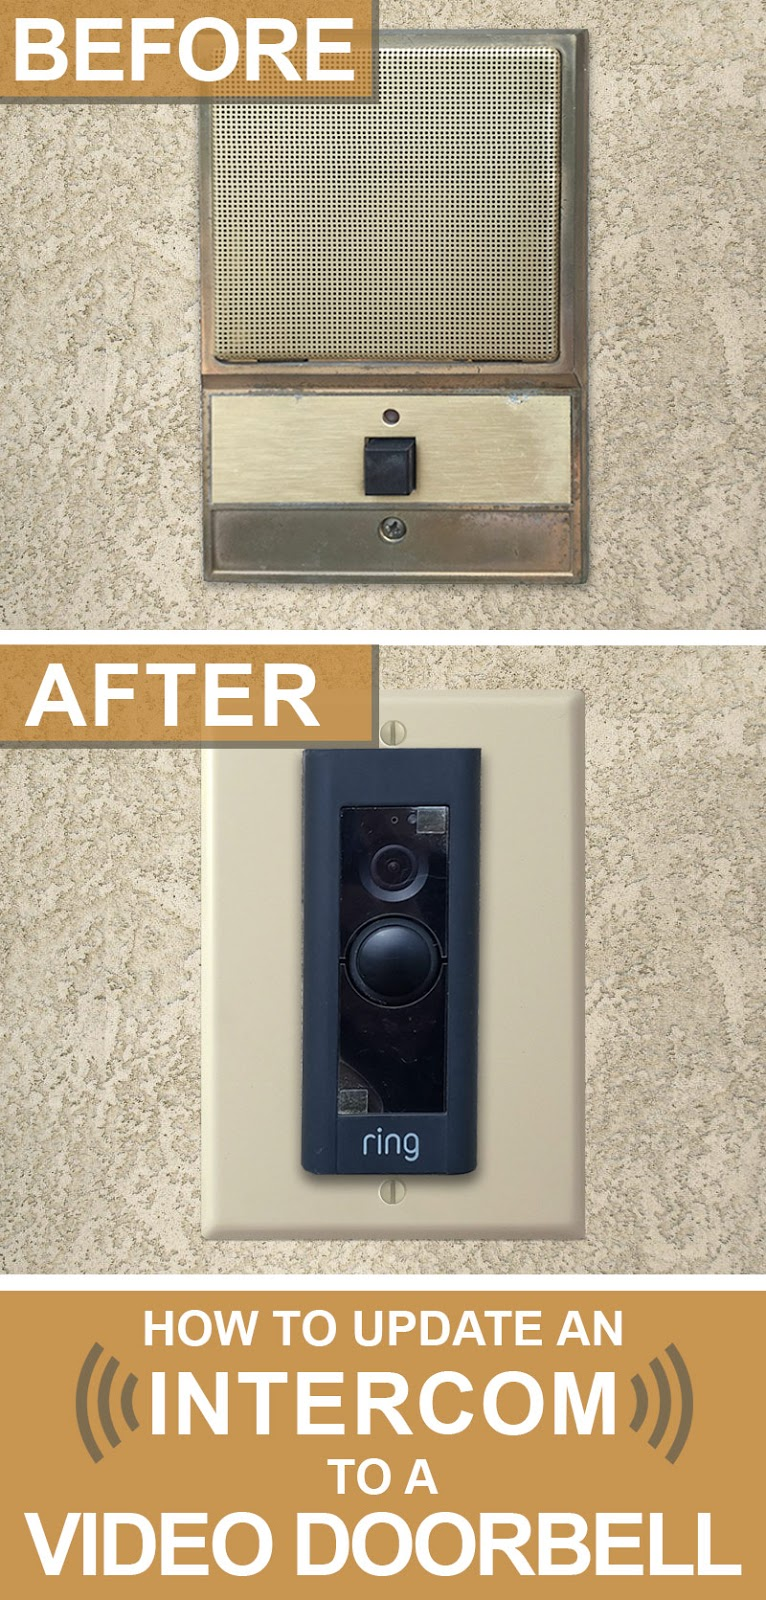 Intercom Cover Plate : intercom, cover, plate, Switch, Plates:, Update, Intercom, Video, Doorbell, These, Covers